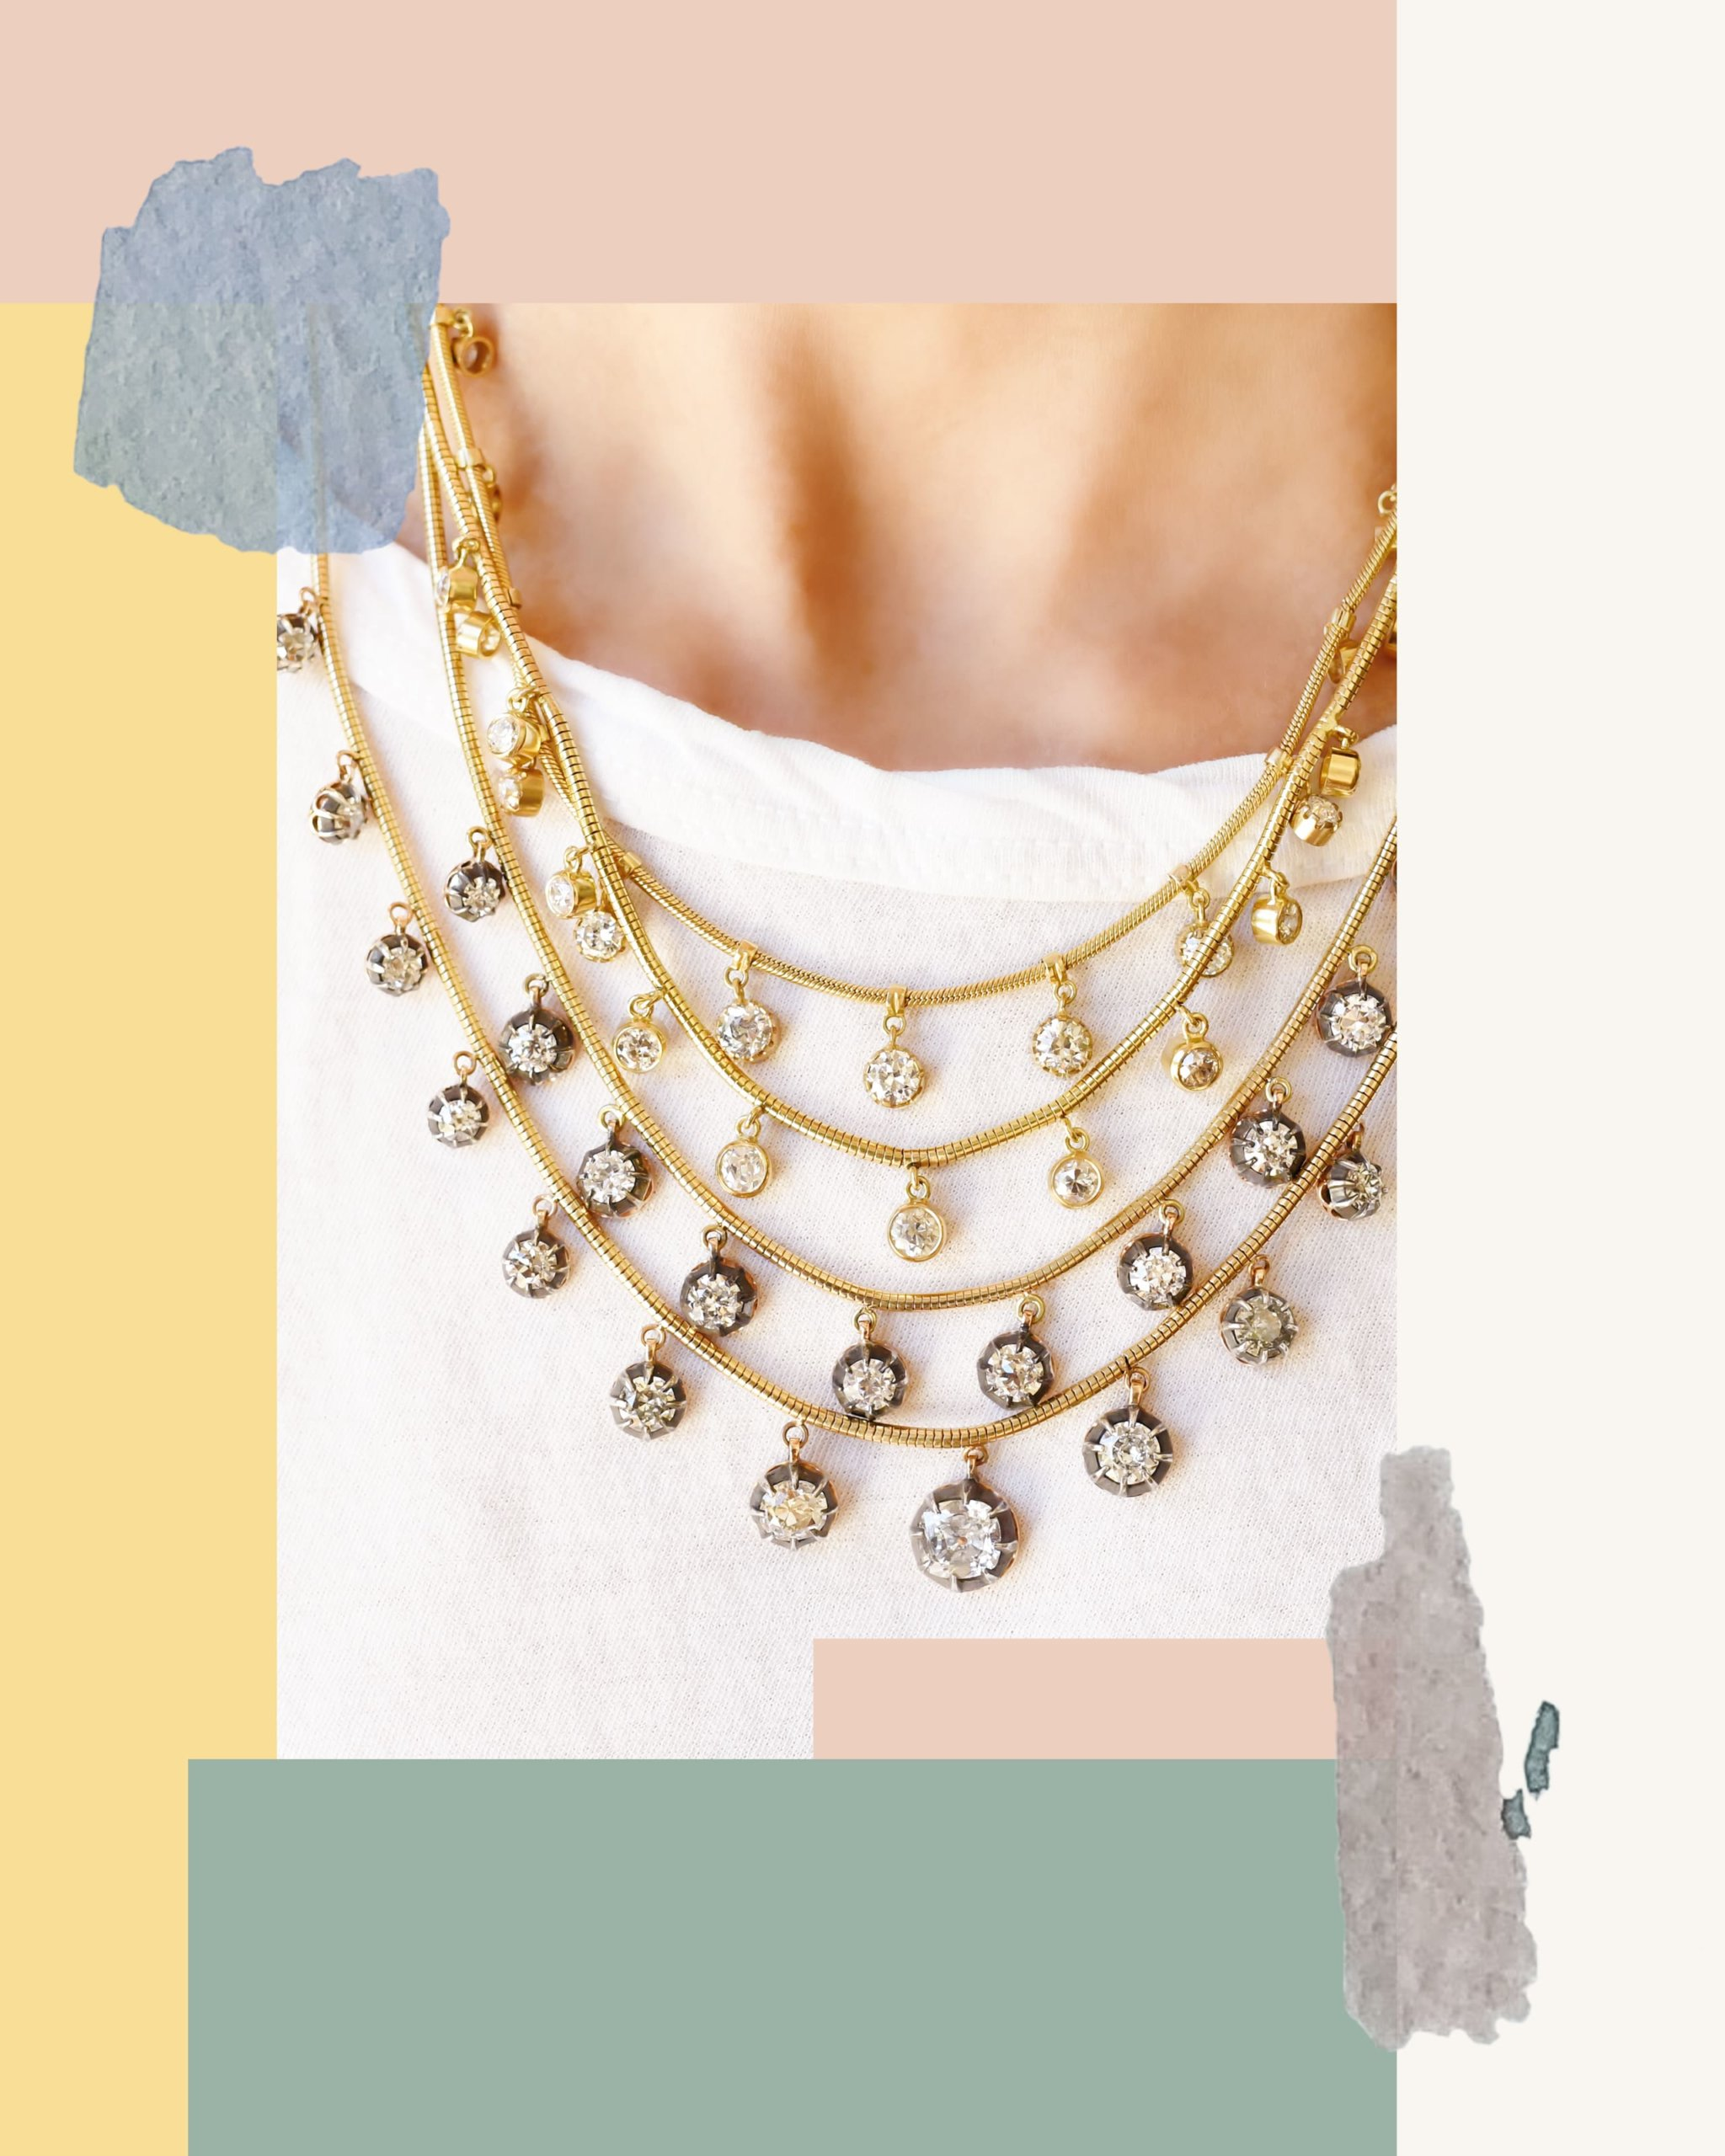 Multicolored round cut diamonds extended from gold layered necklaces from Jenna Blake